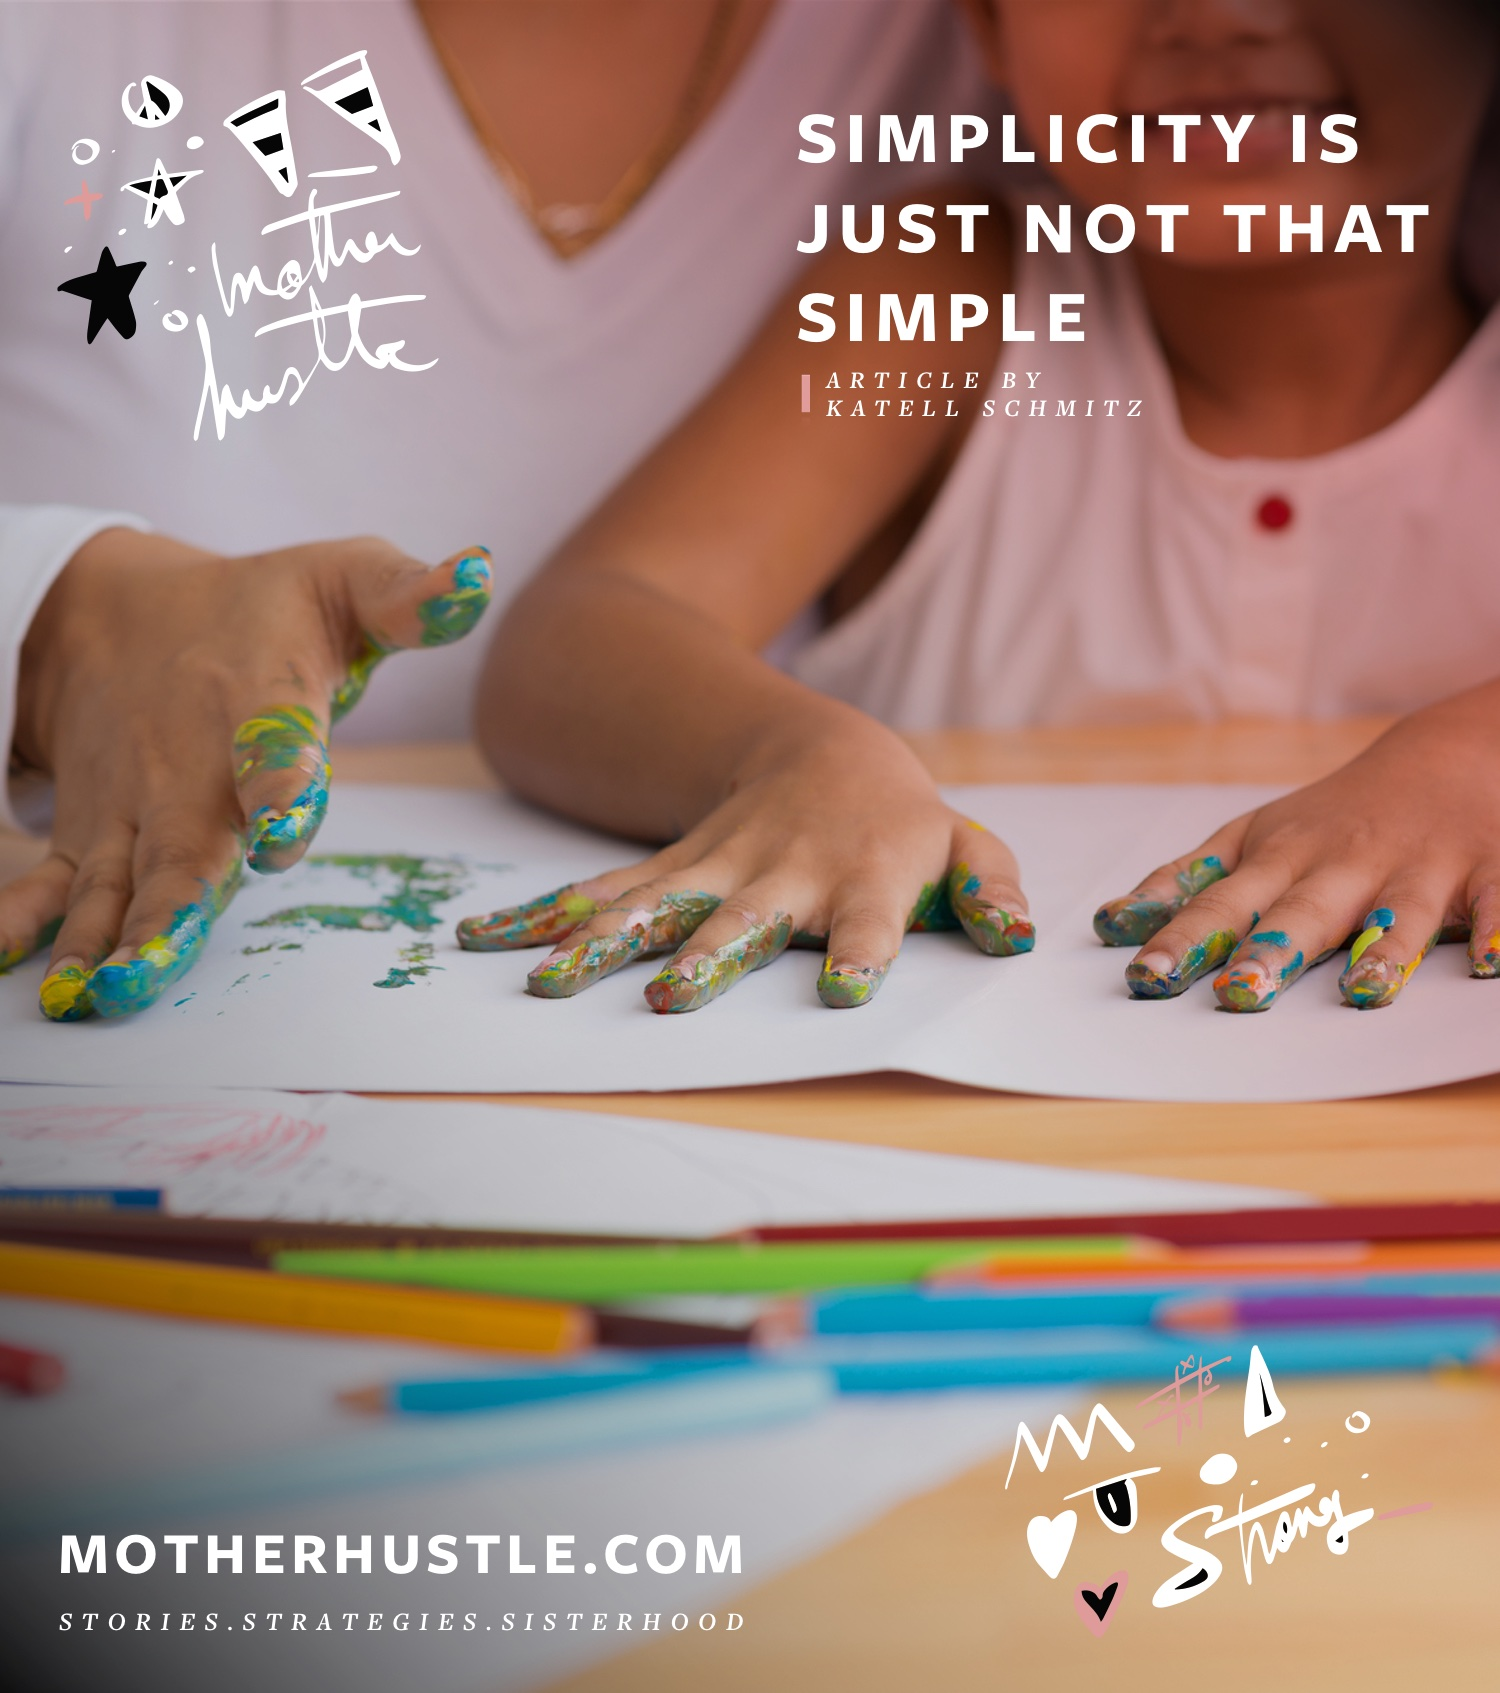 Simplicity Is Just Not That Simple - by Katell Schmitz for MotherHustle